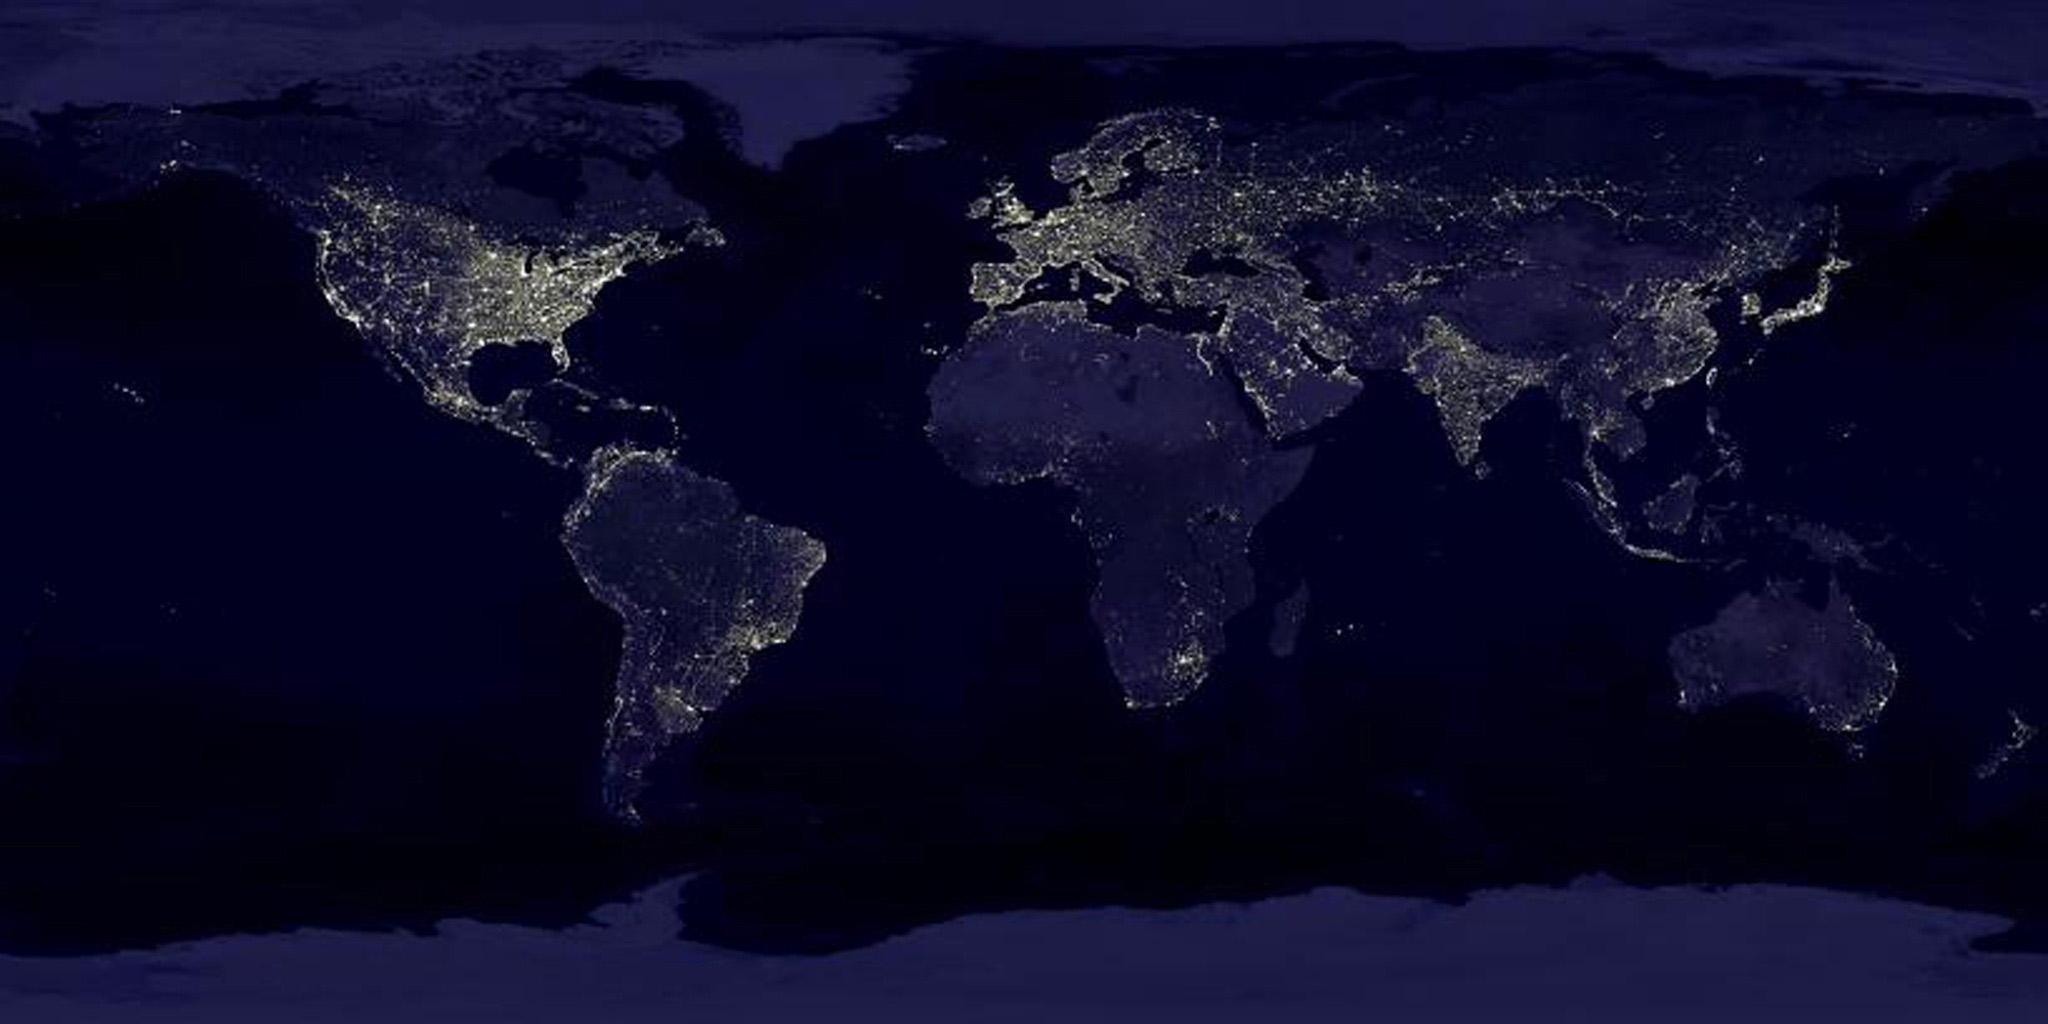 The Eastern U.S., Europe, and Japan are brightly lit by their cities, while interiors of Africa, Asia, Australia, and South America are dark and lightly populated in this image created in 2000 by NASA's Goddard Space Flight Center.